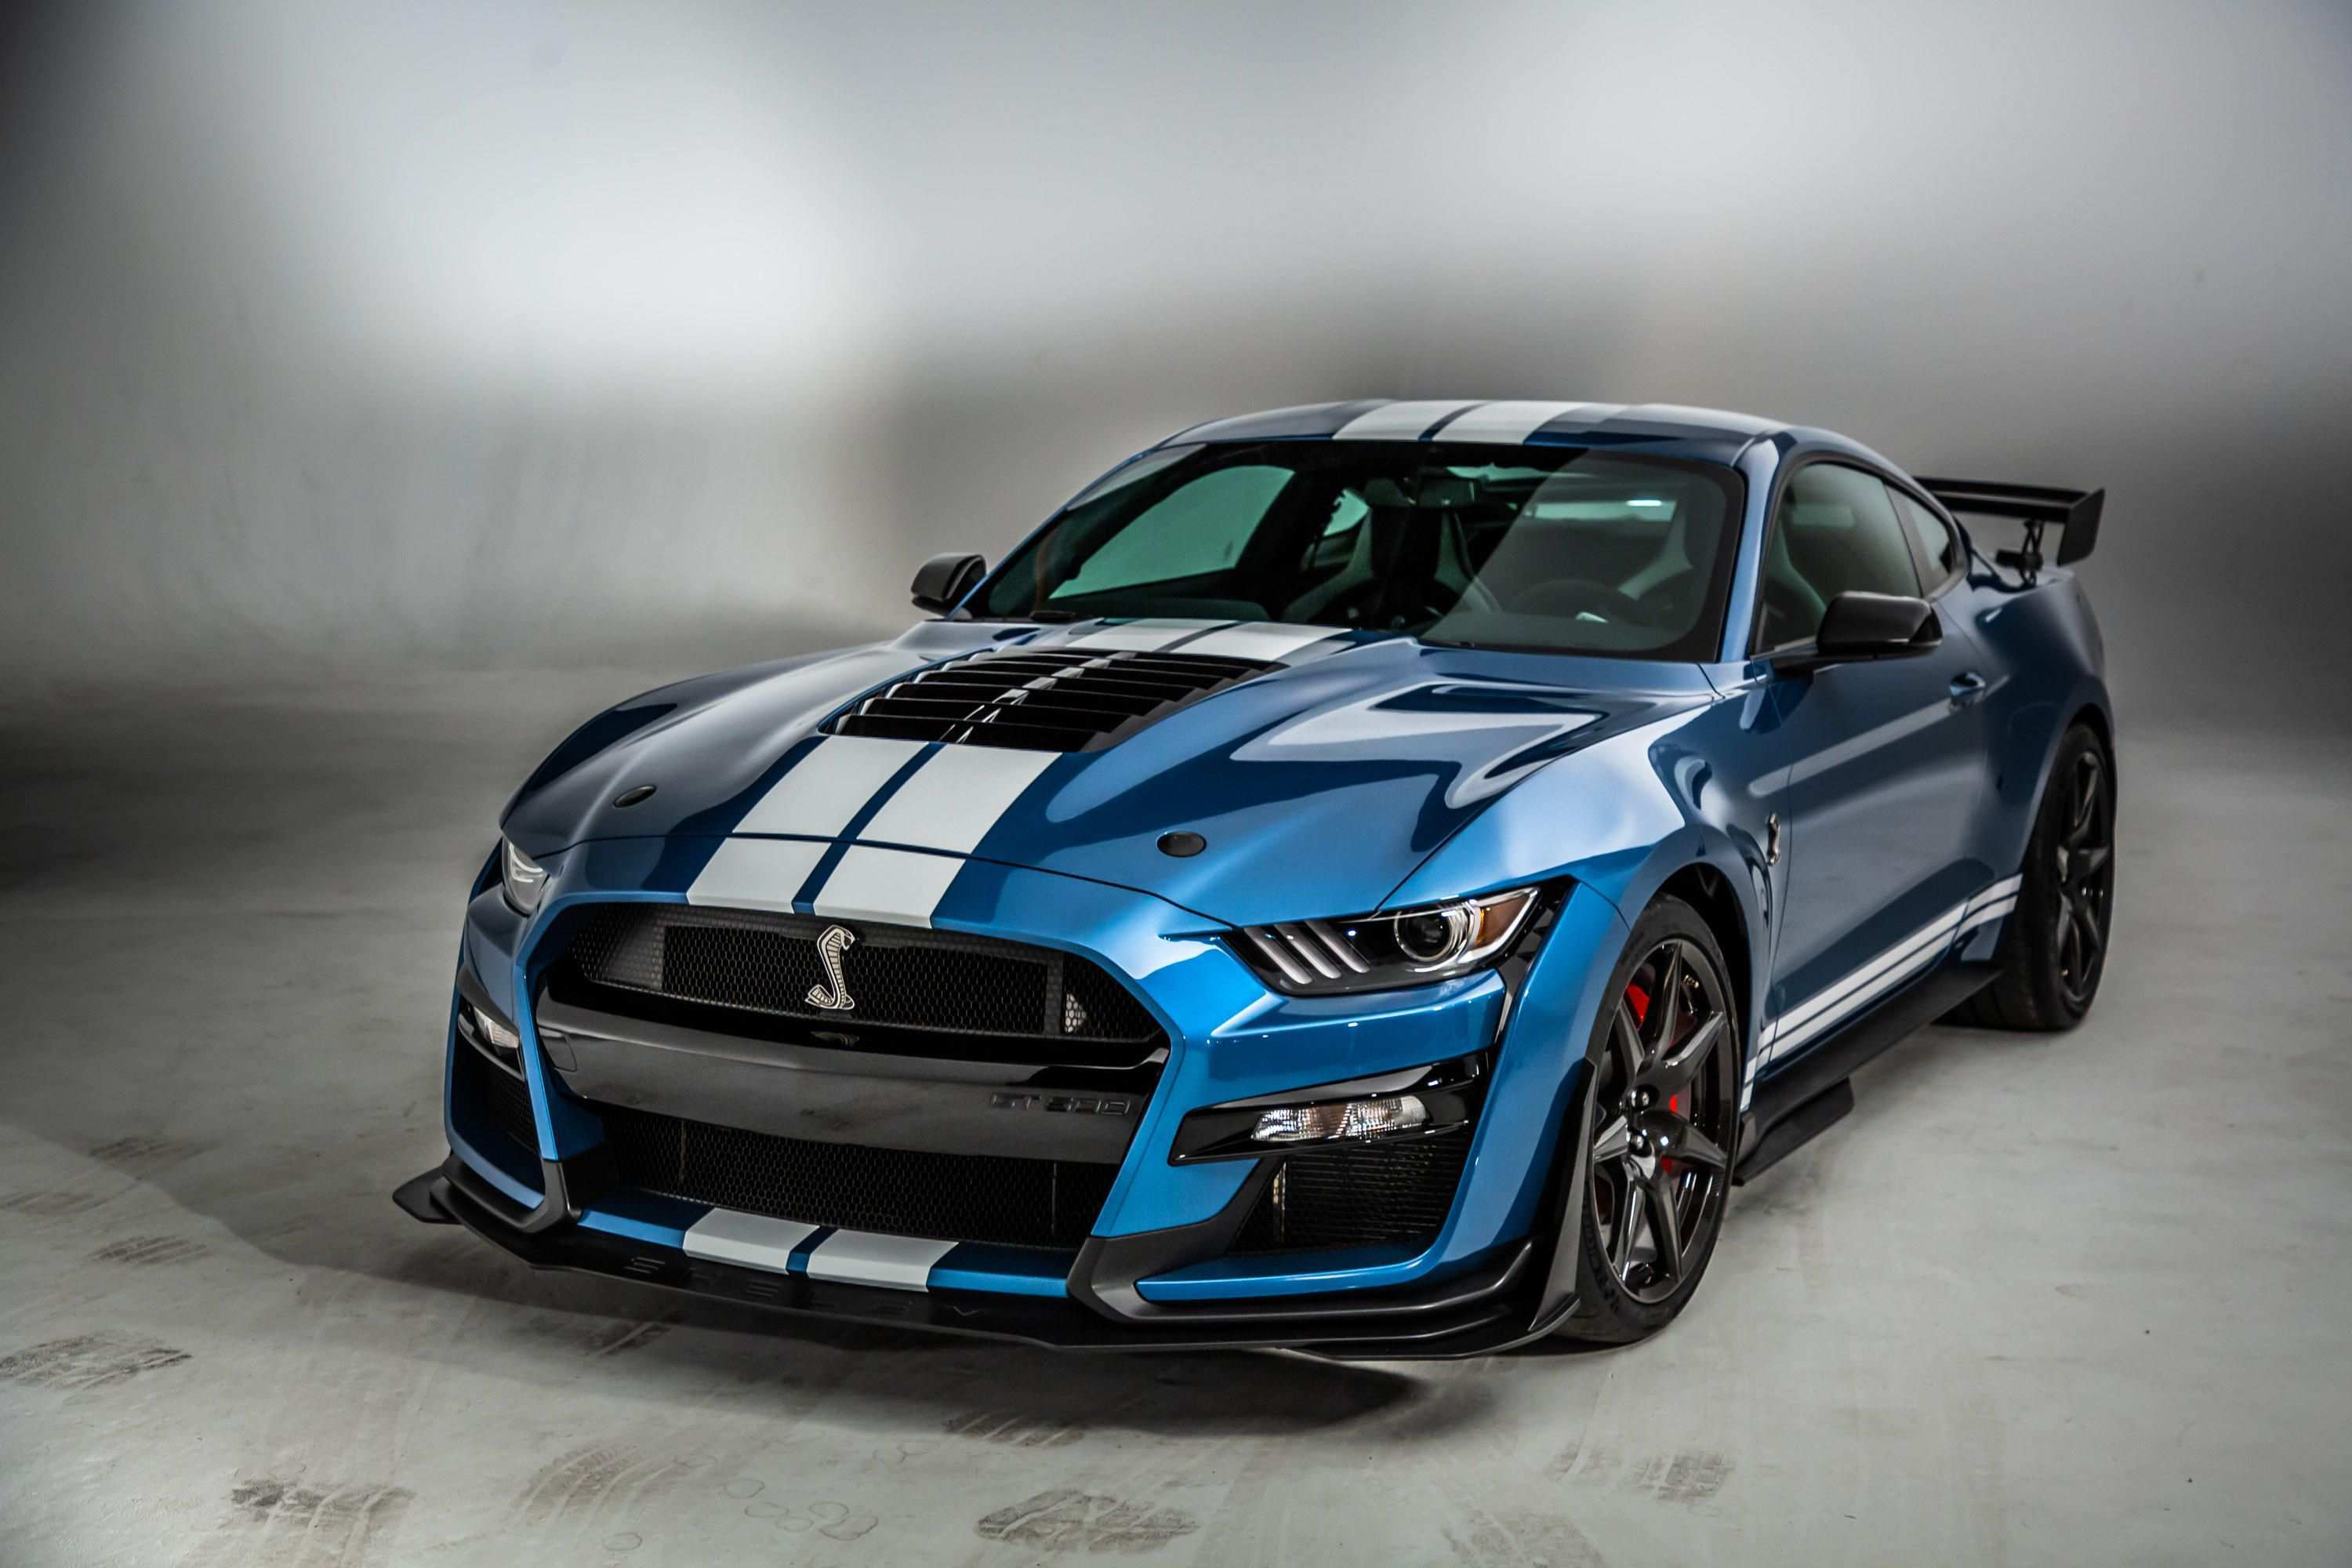 88 The Best 2020 Mustang Gt500 New Concept